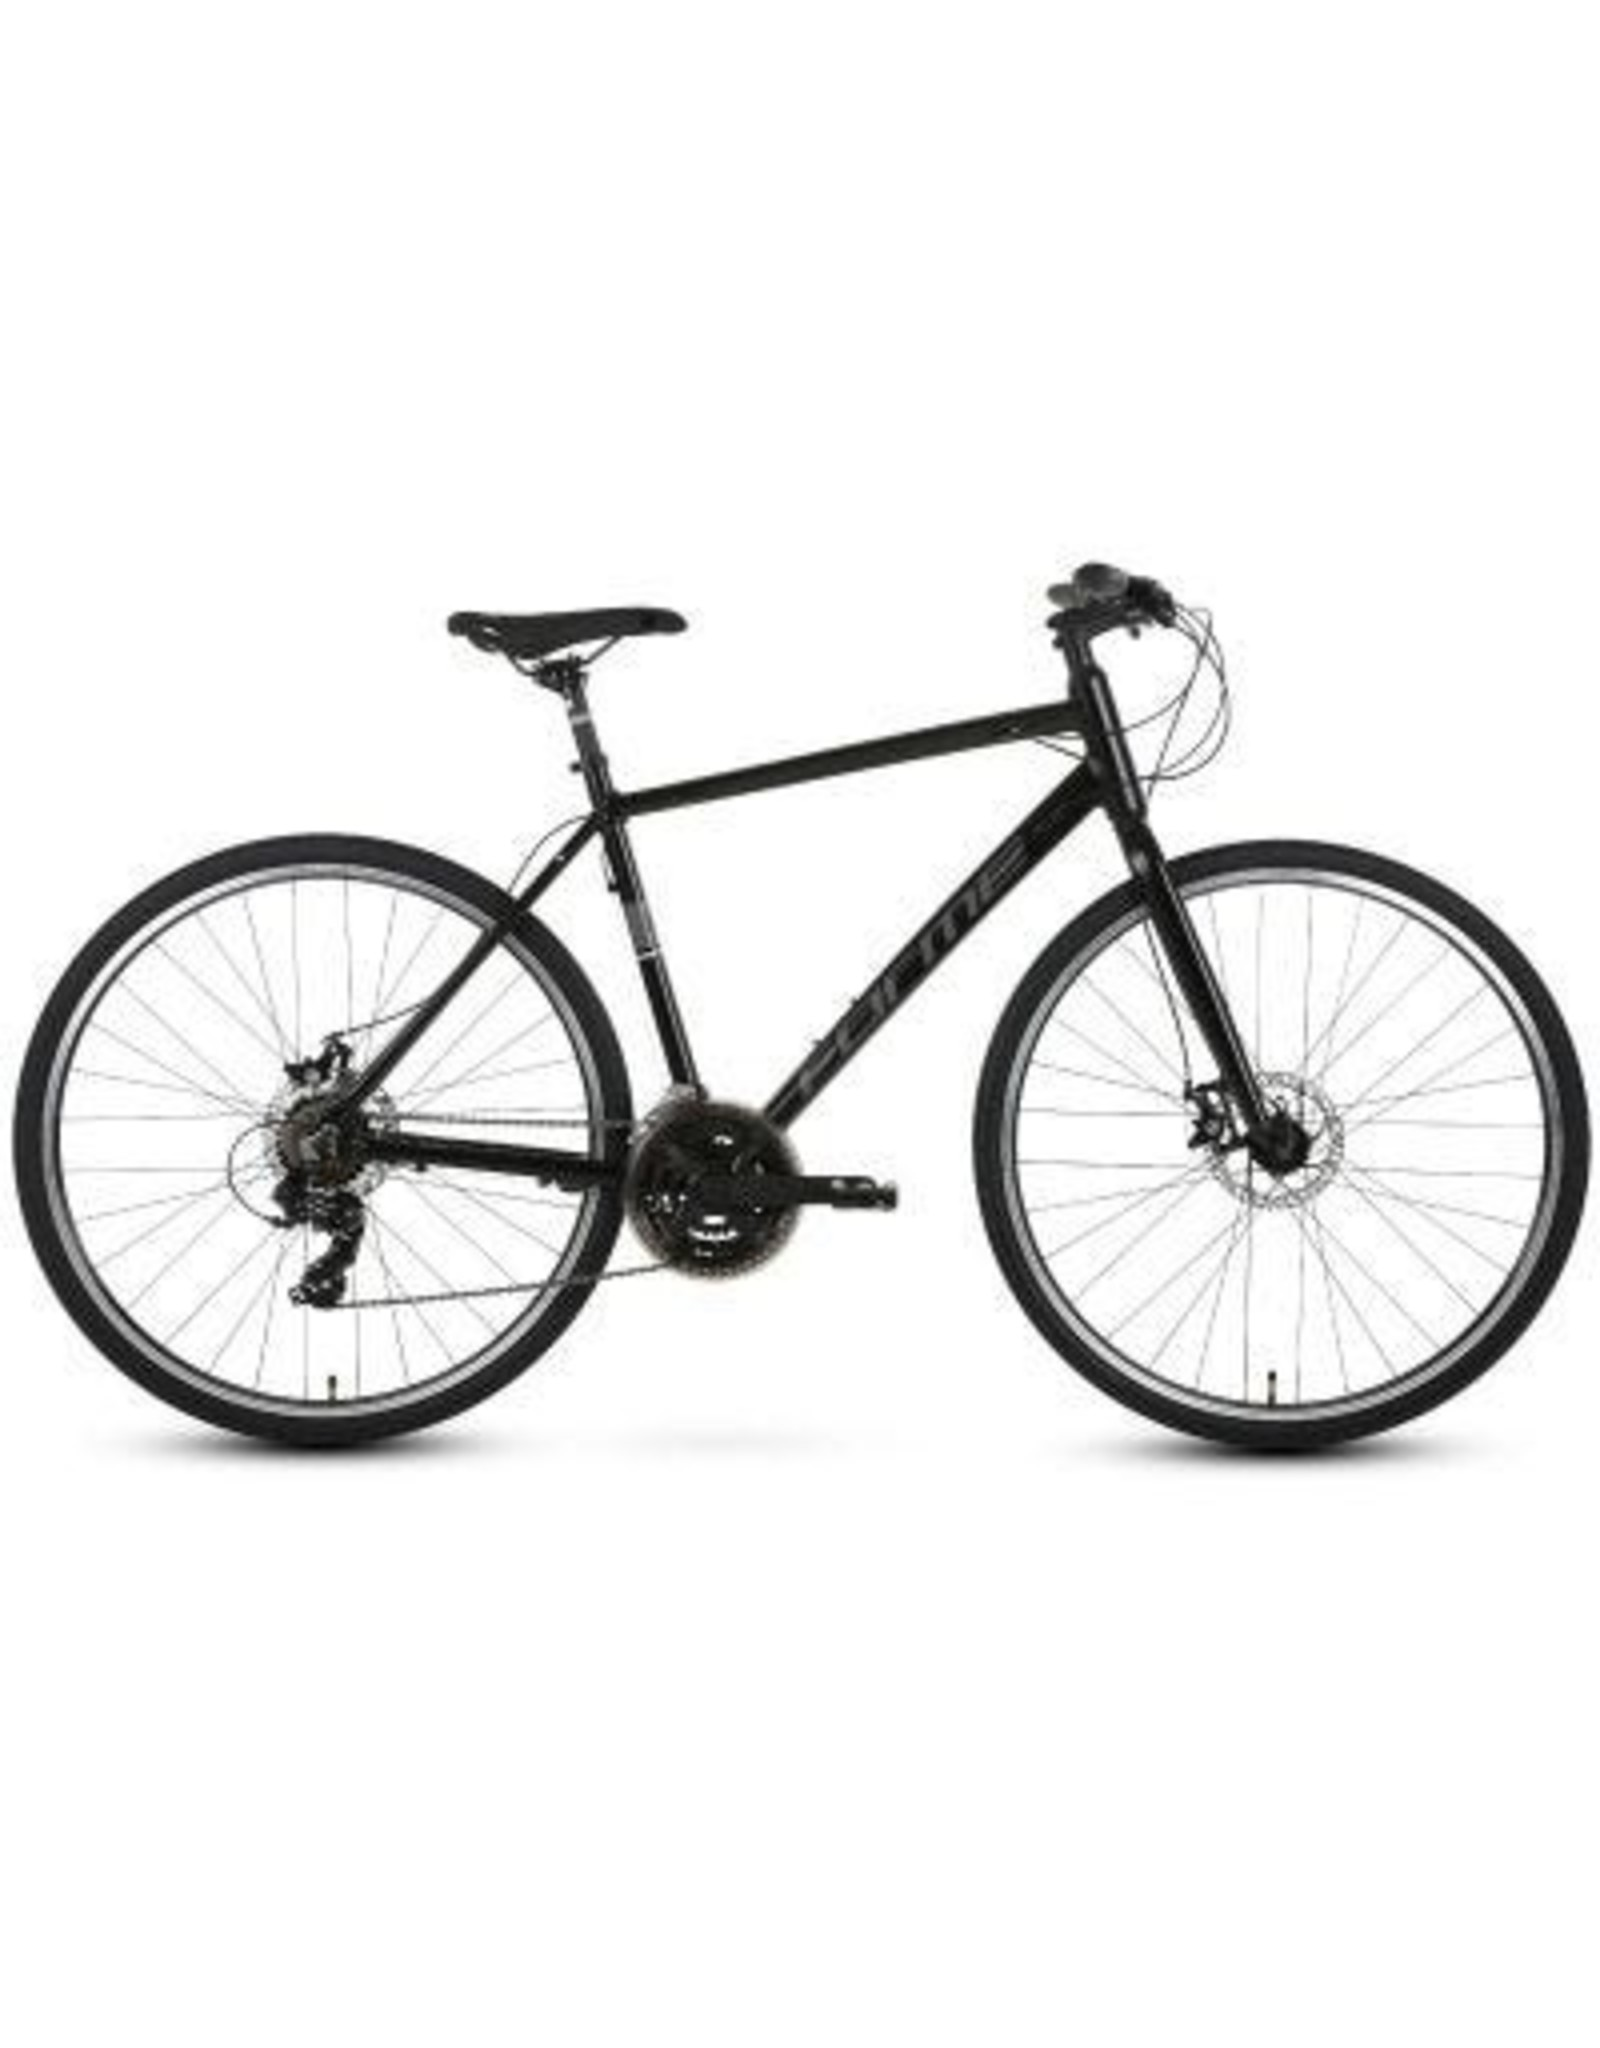 "Forme Forme Winster 2 Gents Black 700C 20"" Hybrid Bike"